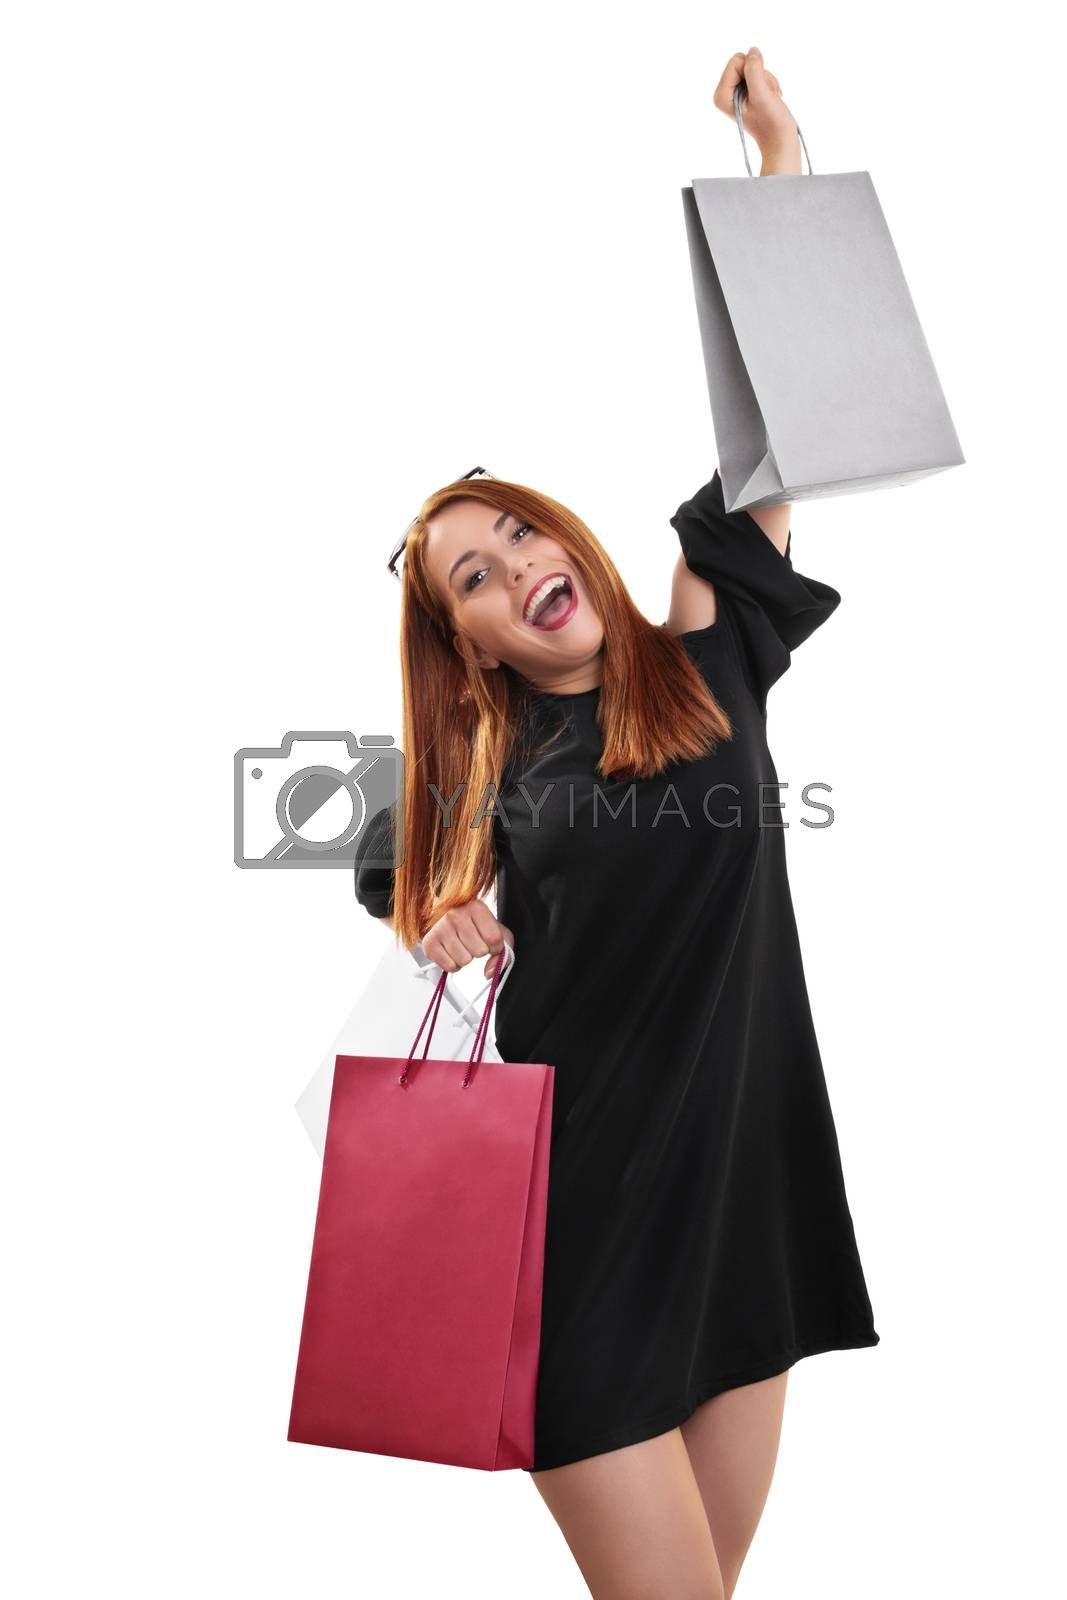 Excited and happy young woman with shopping bags by Mendelex